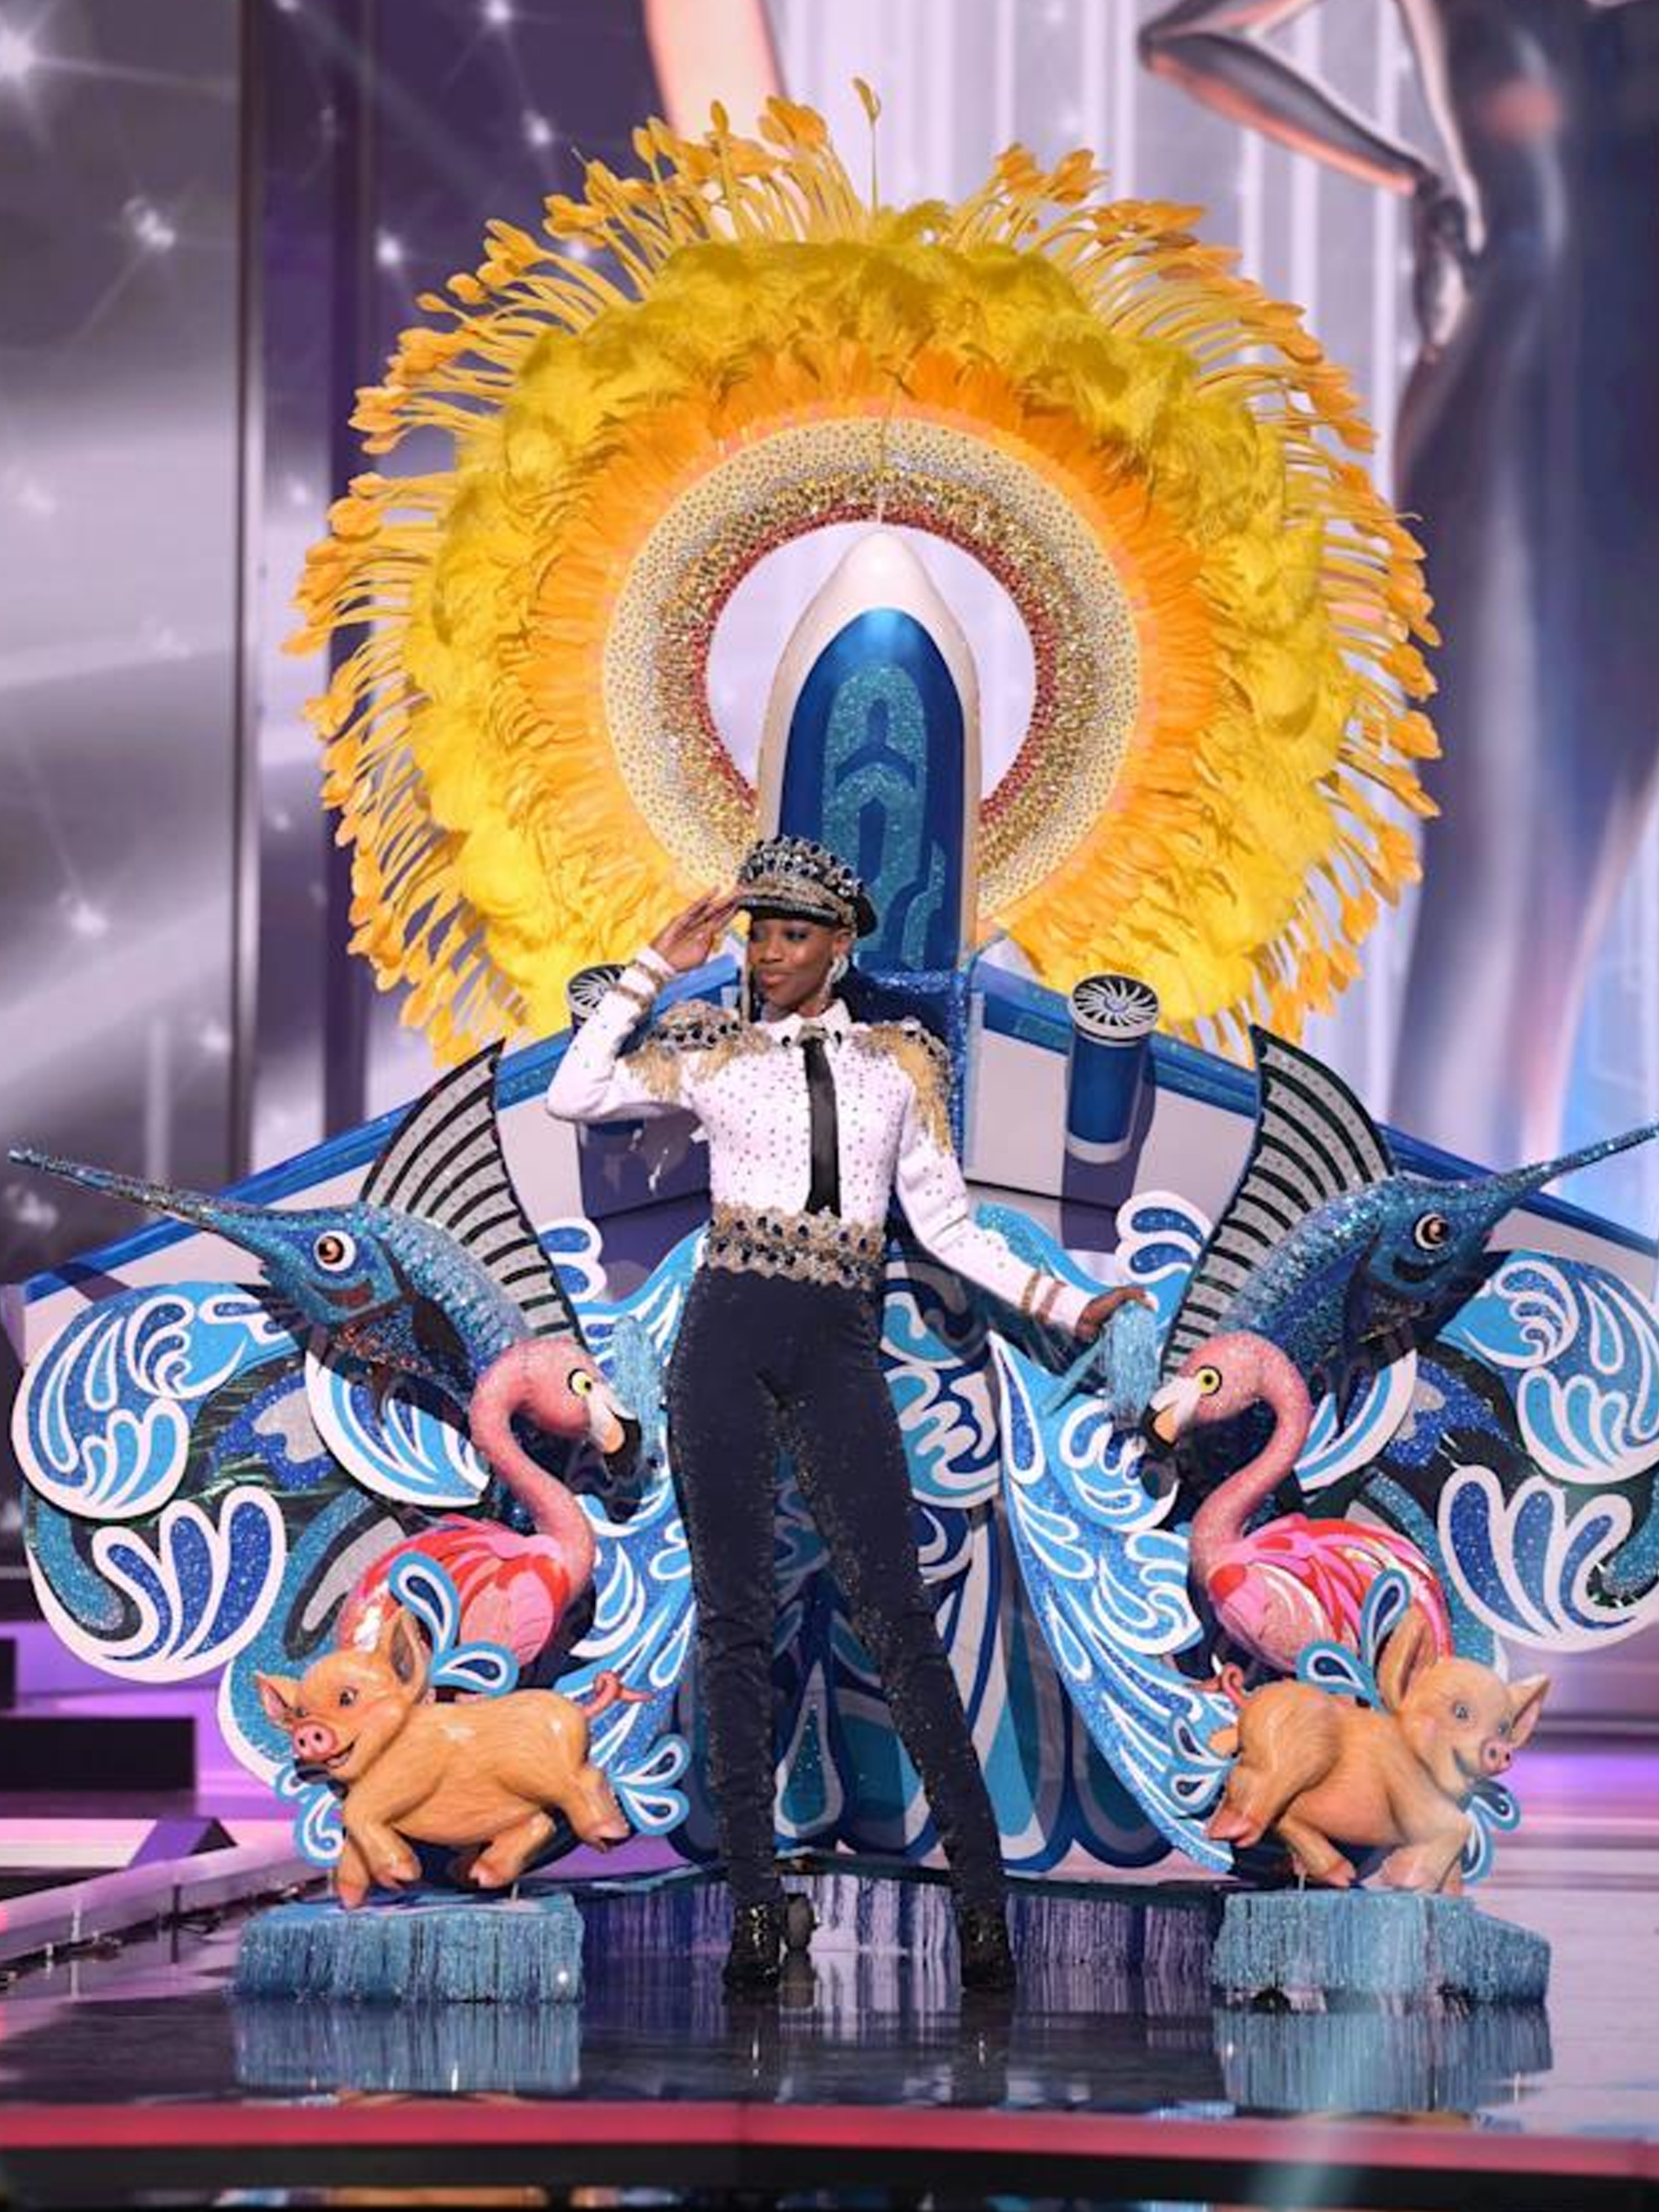 A photograph of the Ms. Universe Bahamas' national 2021 costume. She's wearing a bedazzled pilot uniform, with props of a plane, a sun piece, swordfish, flamingos, and pigs.